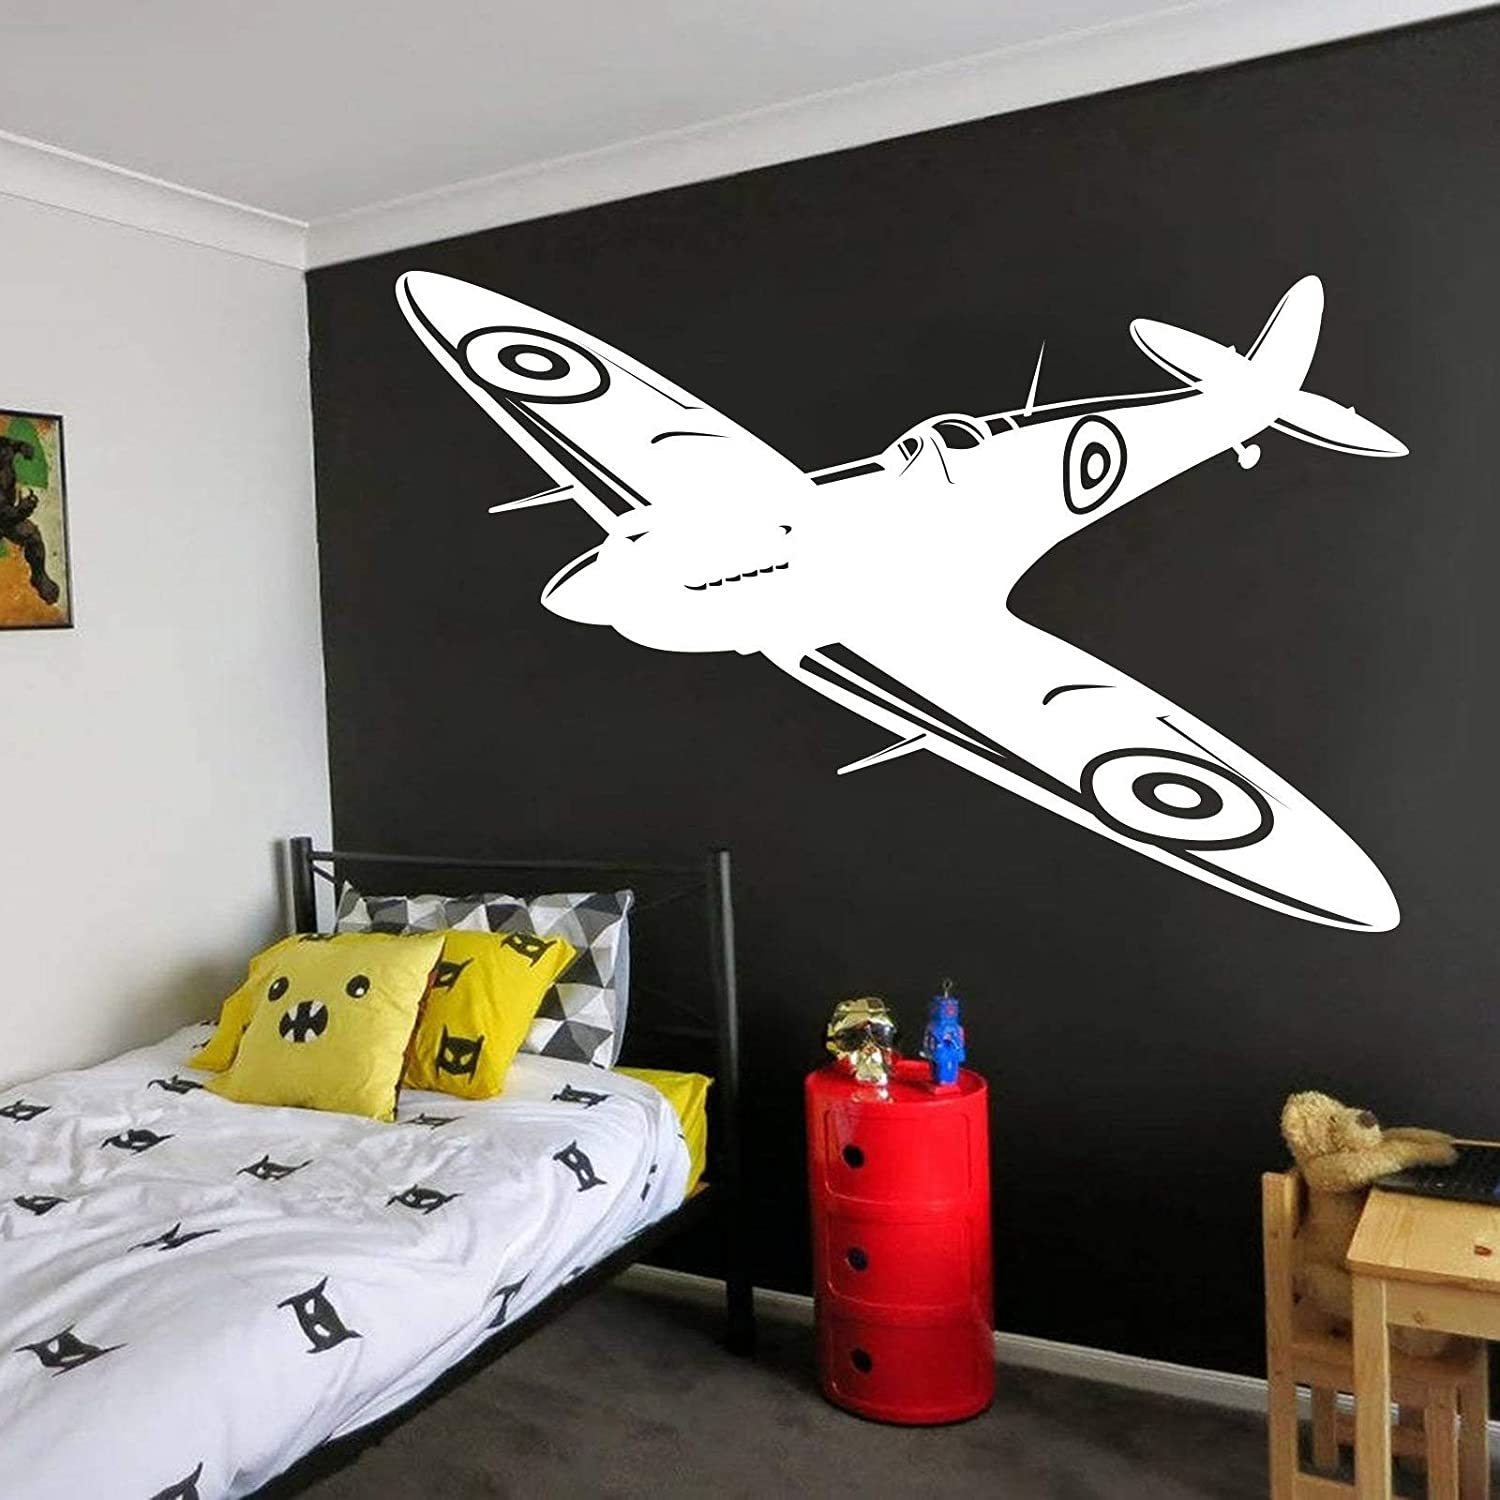 Andre Shop Spitfire Wall Decals British Fighter Ww2 Decals Jet Aircraft Plane Airplane Military Wall Sticker Vinyl Boy Room Decor Custom Color Home Kitchen